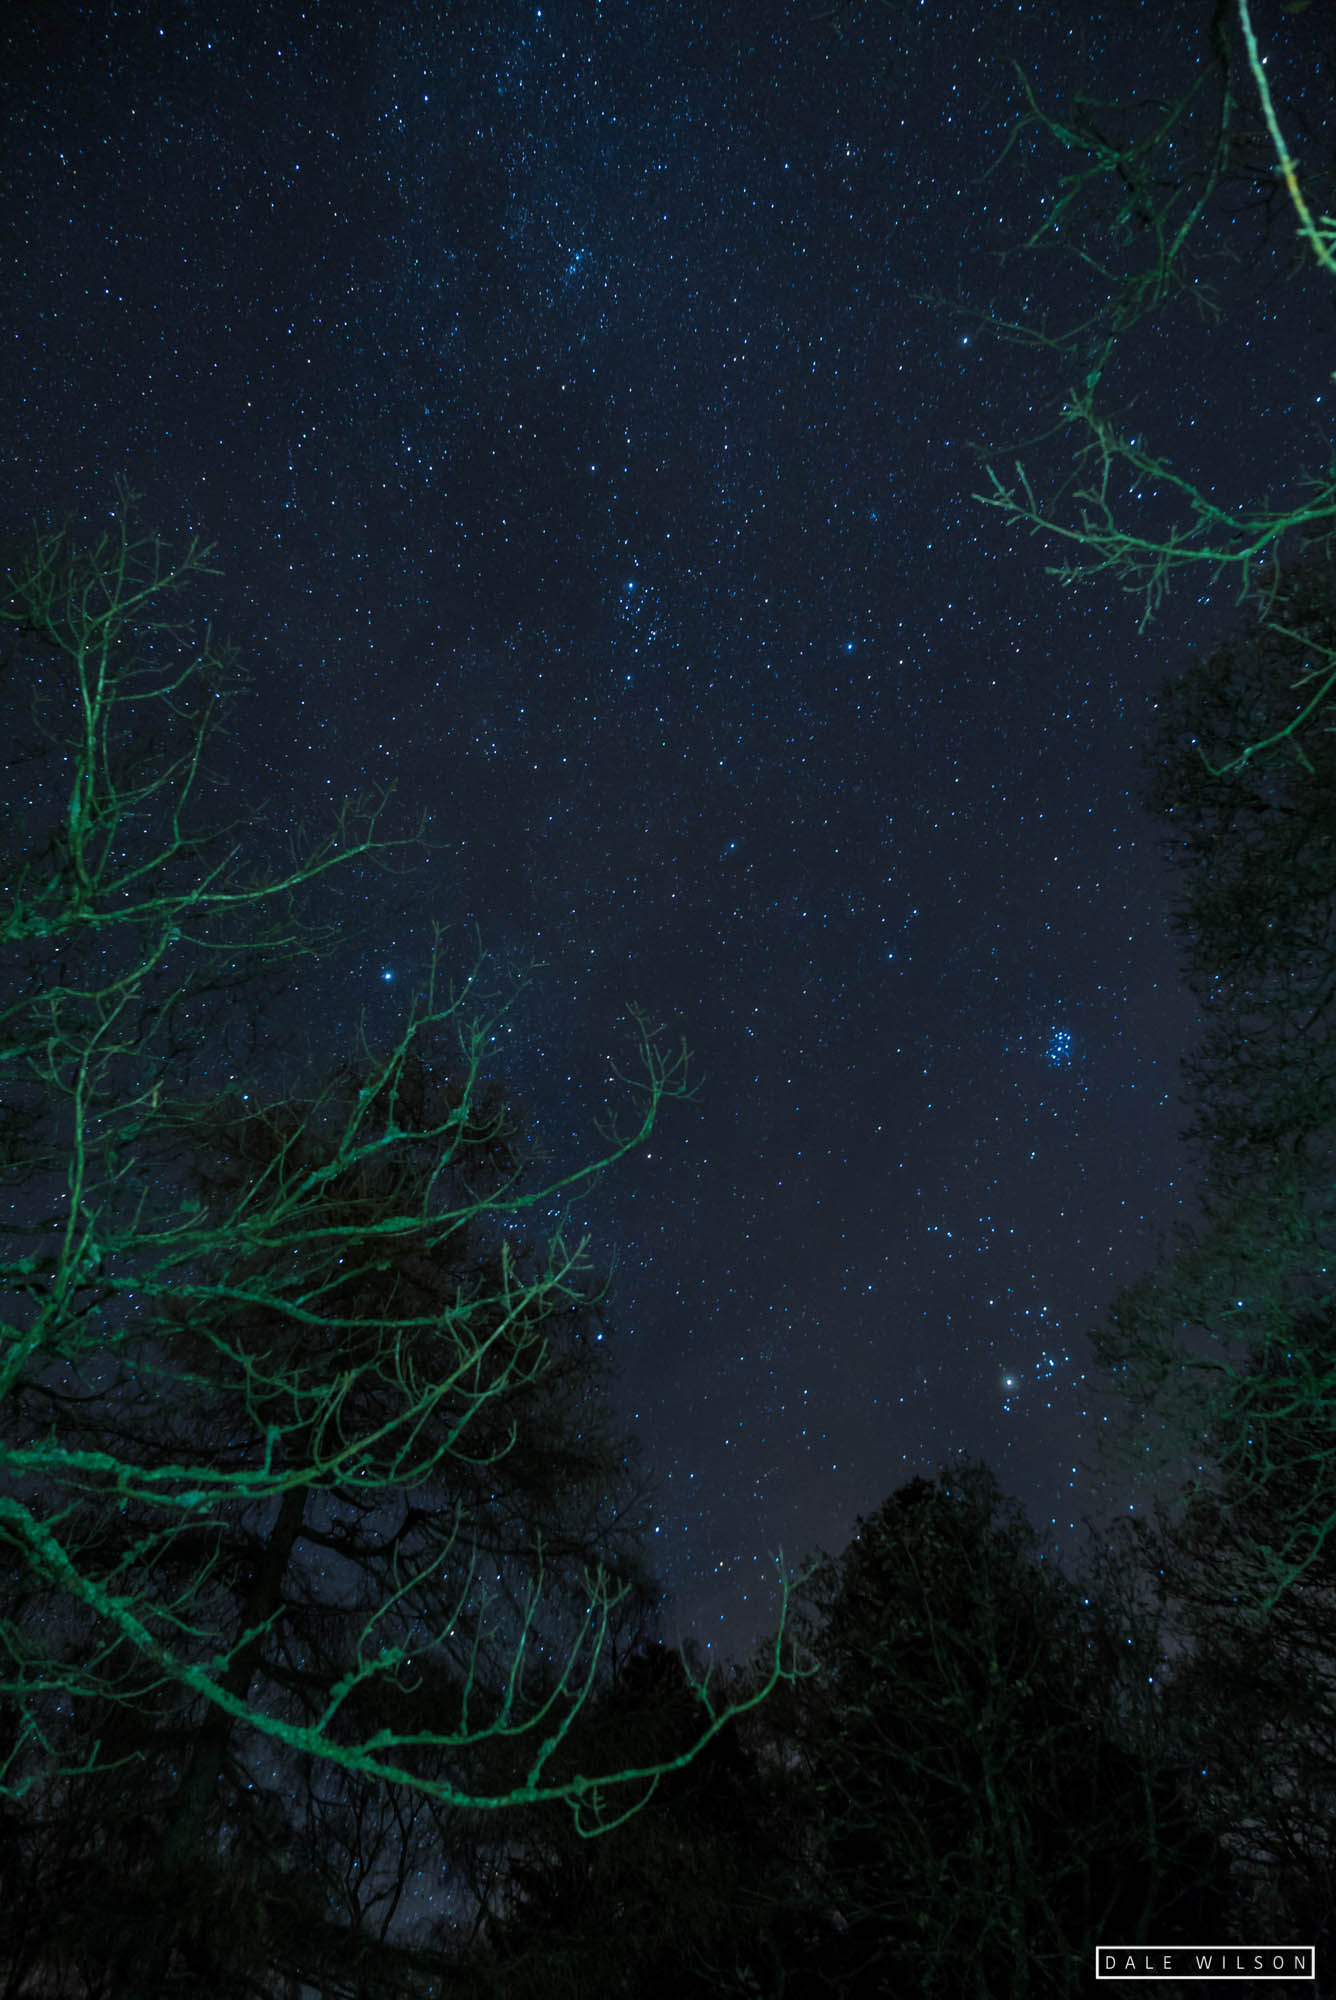 Stars and trees flash photography surprise view lake district